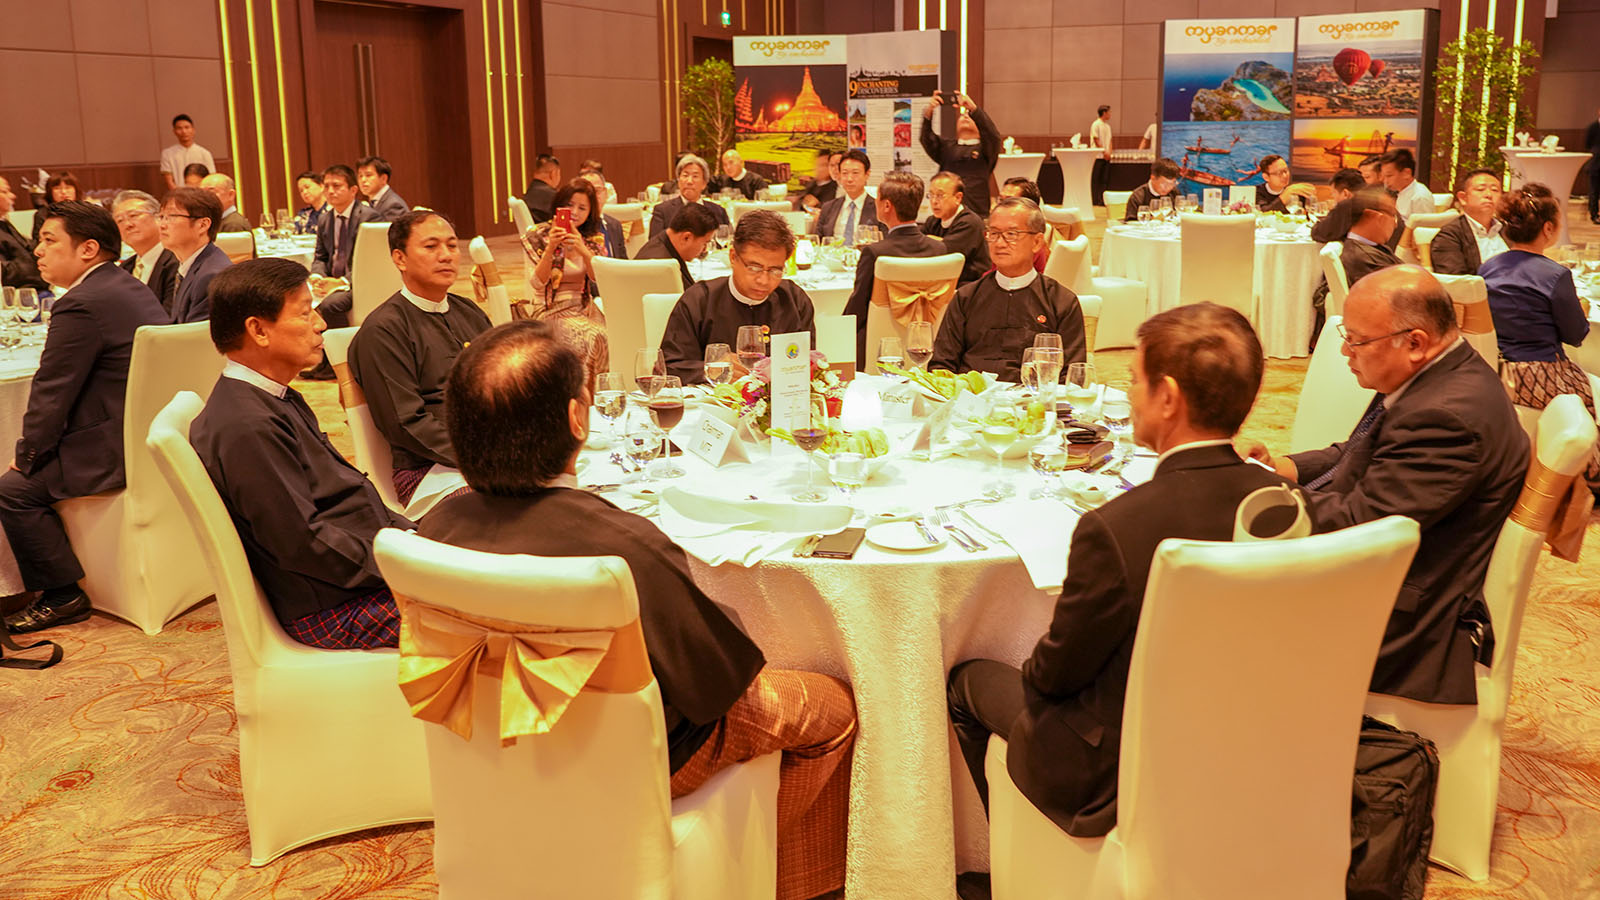 The welcoming dinner being hosted to hounour the representatives of JATA Fam Trip from Japan. Photo: MNA